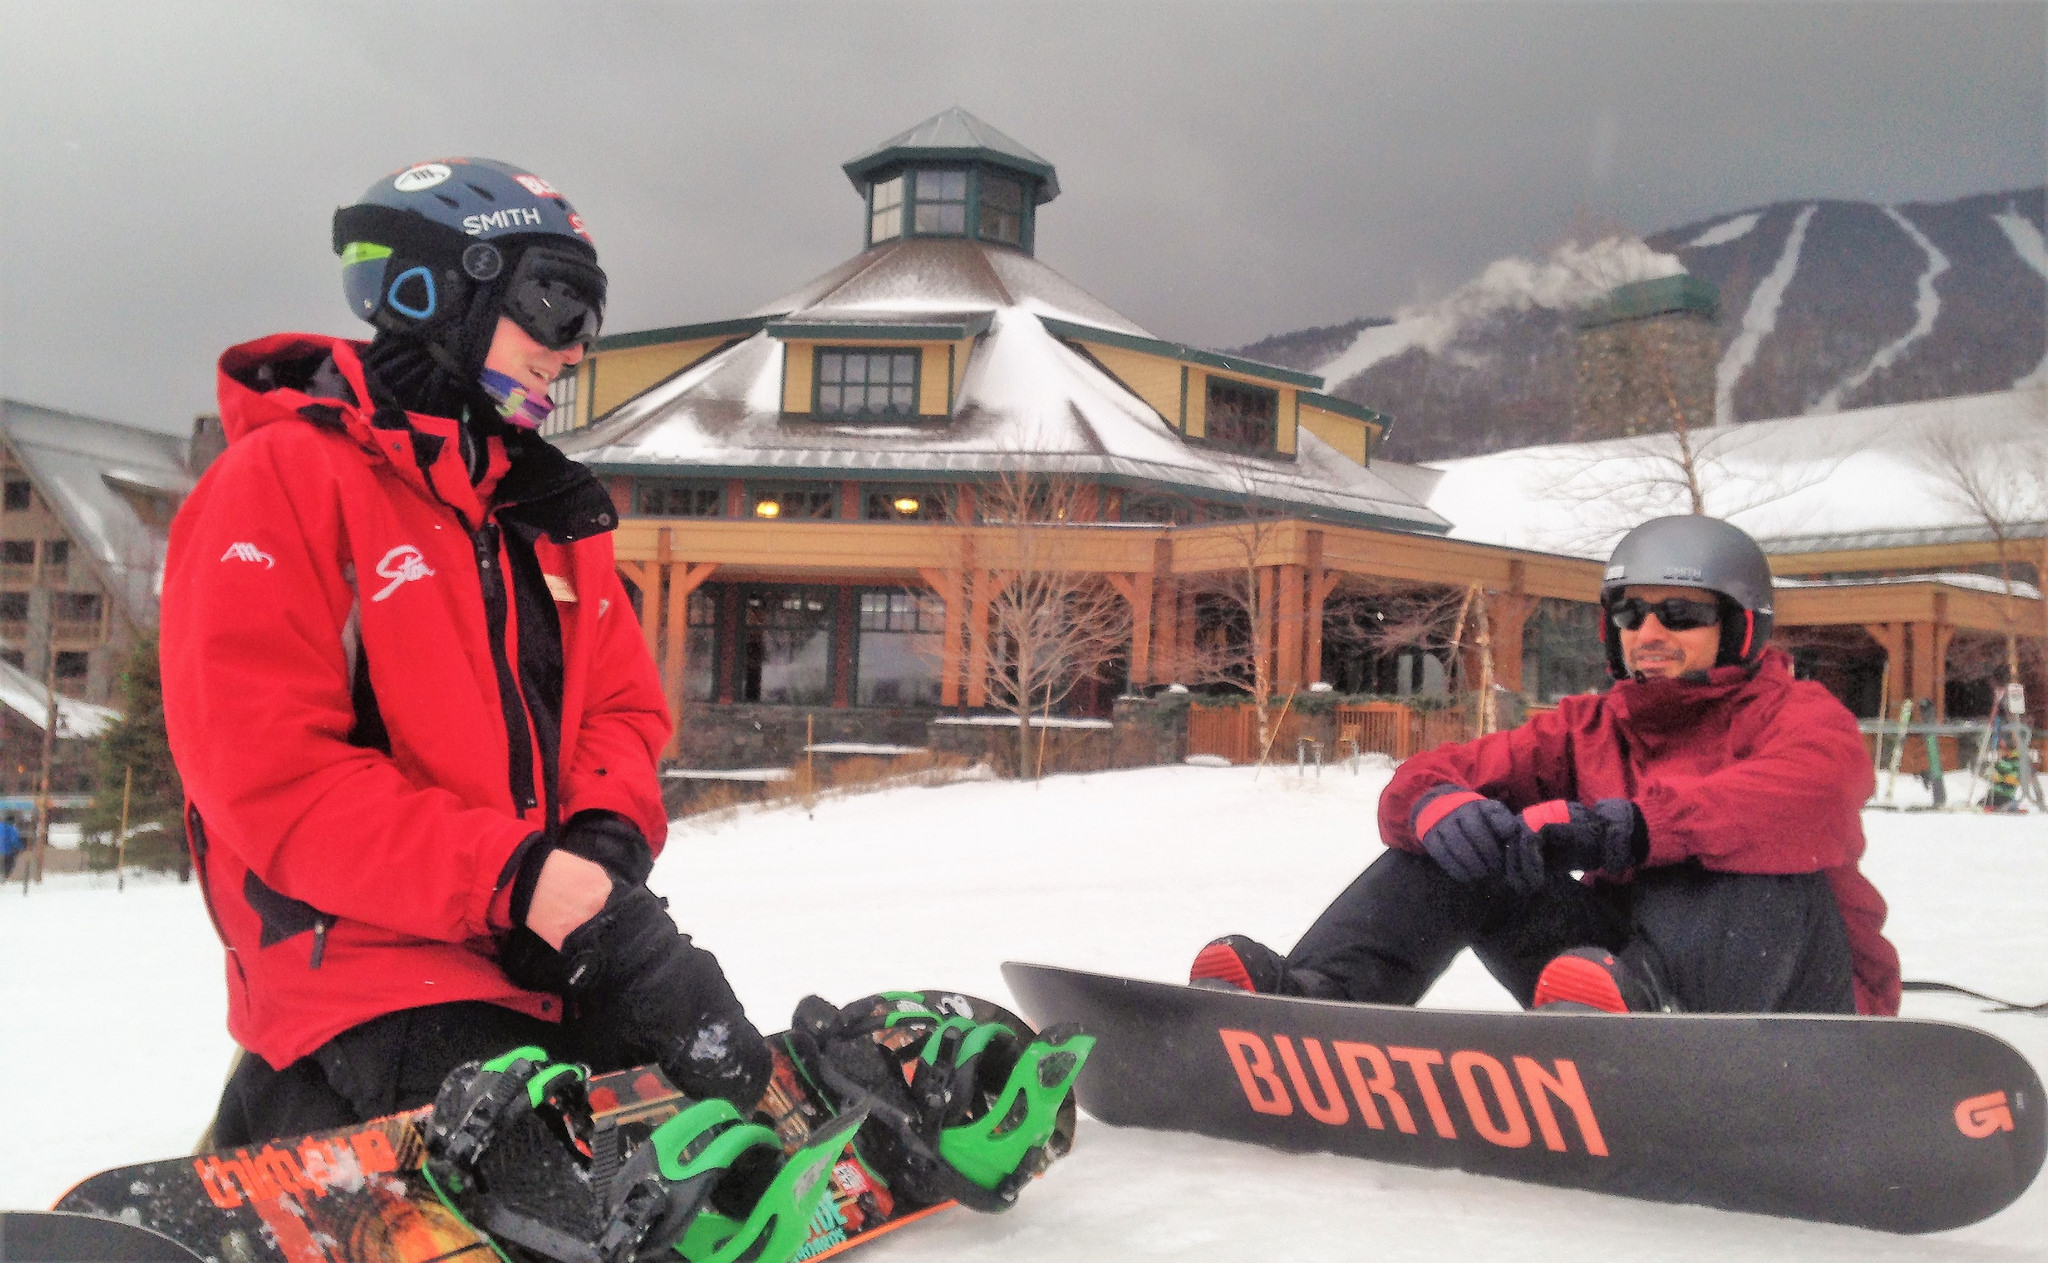 snowboarding school for adults - Stowe Ski Resort